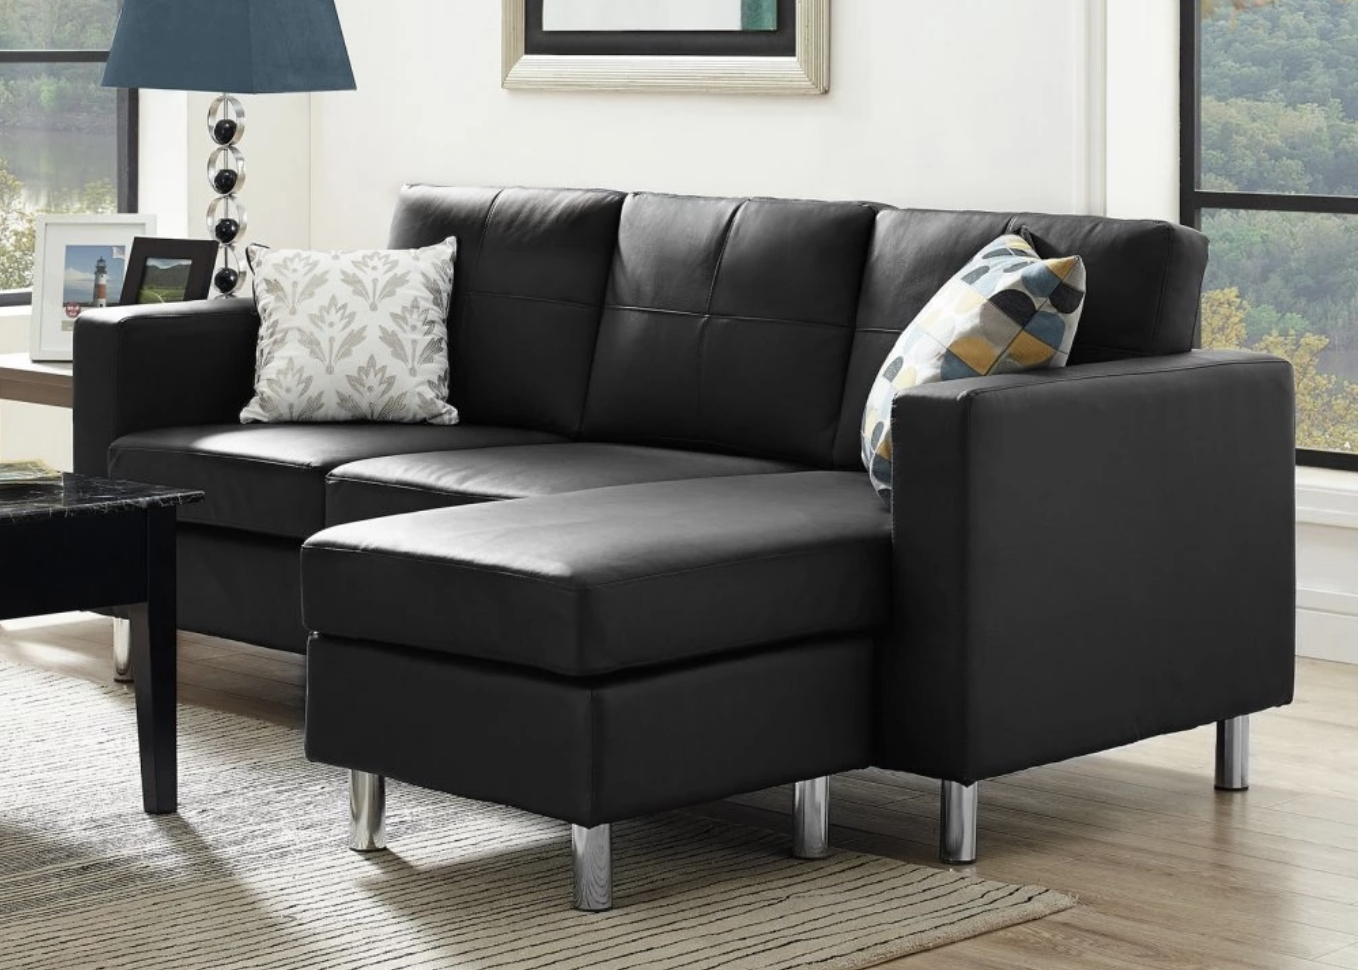 Best And Newest 75 Modern Sectional Sofas For Small Spaces (2018) Pertaining To Small Sectional Sofas For Small Spaces (View 2 of 15)